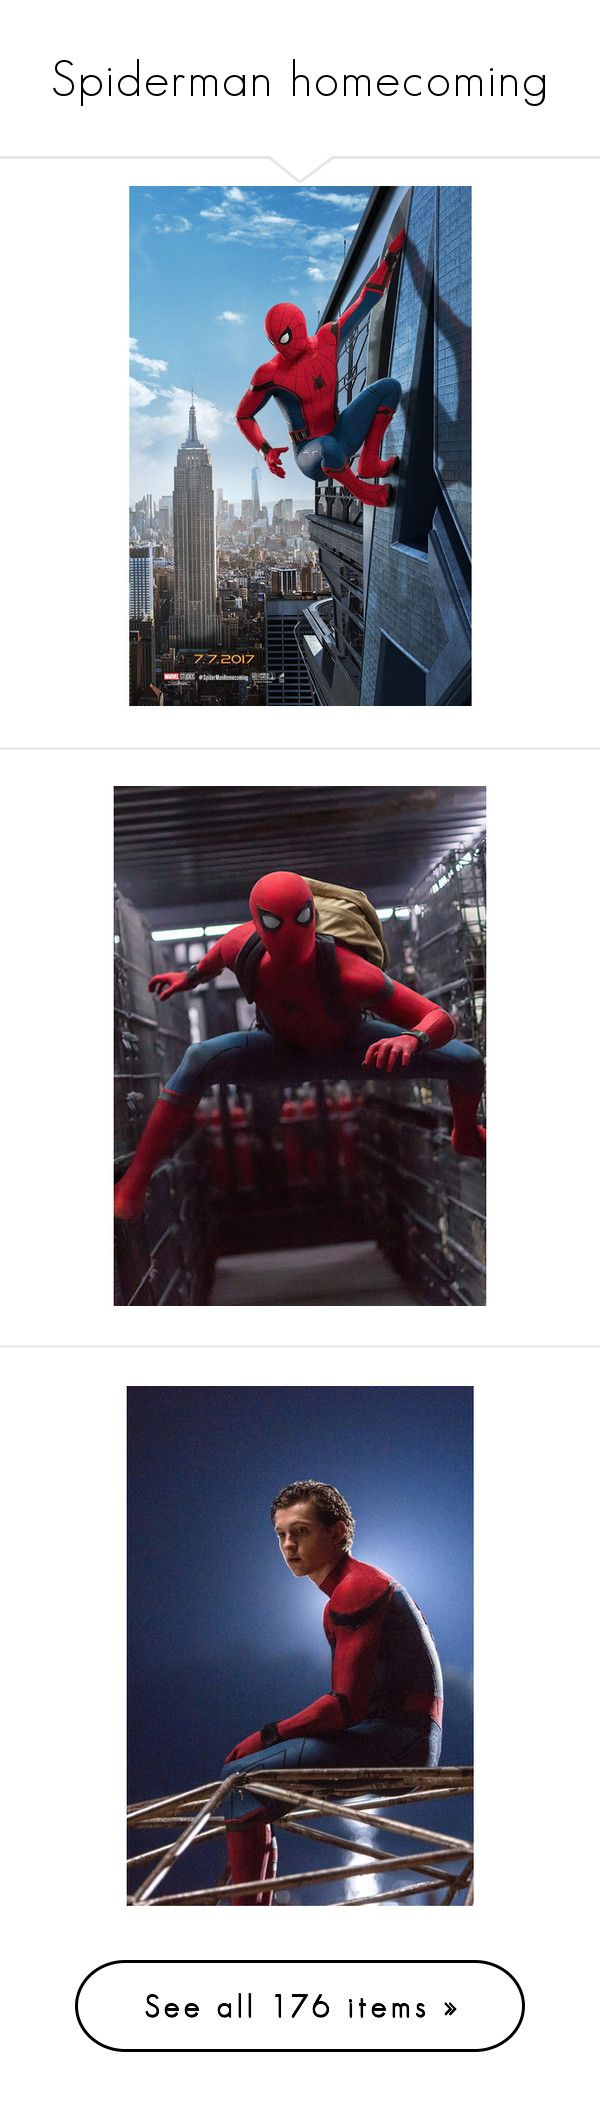 """""""Spiderman homecoming"""" by violetrose74 ❤ liked on Polyvore featuring home, home decor, wall art, spider man poster, spiderman wall art, spiderman poster, motivational wall art, comic book wall art, comic wall art and inspirational home decor"""